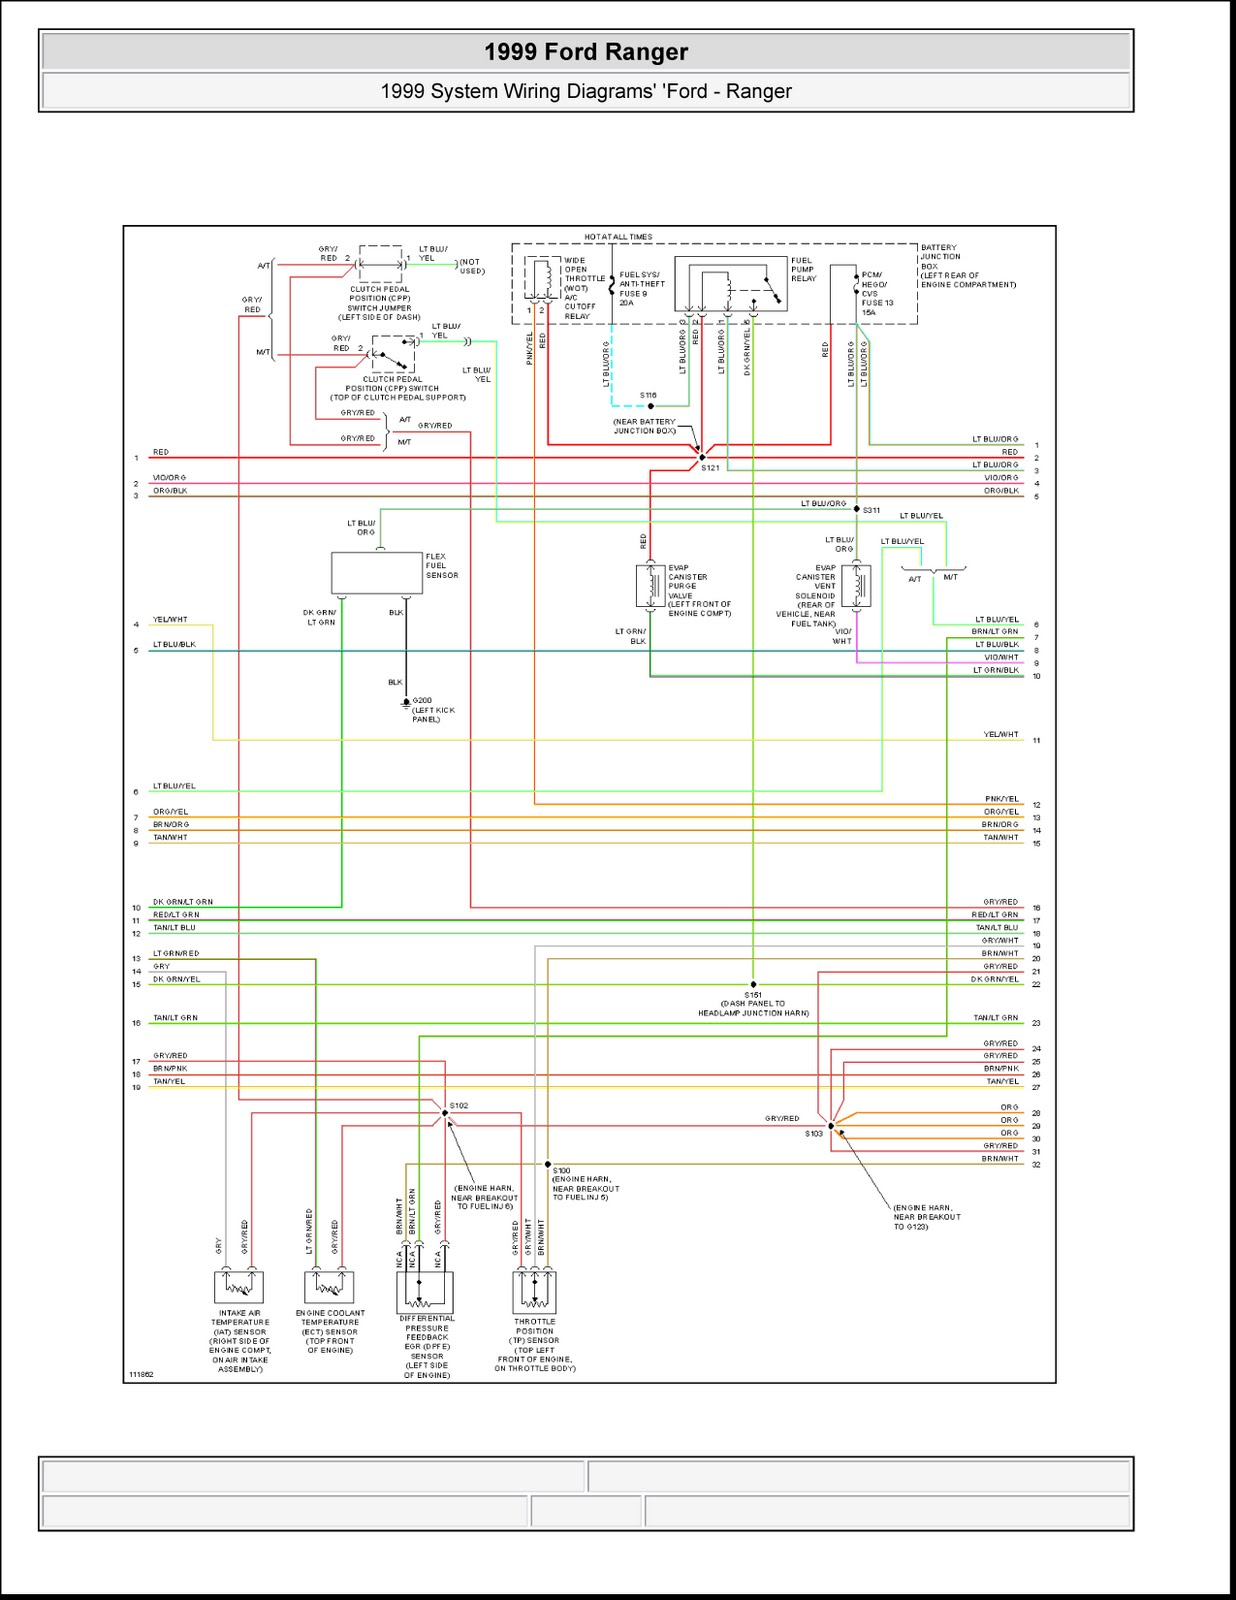 1999 Ford Ranger System Wiring Diagrams 4 Images Engine